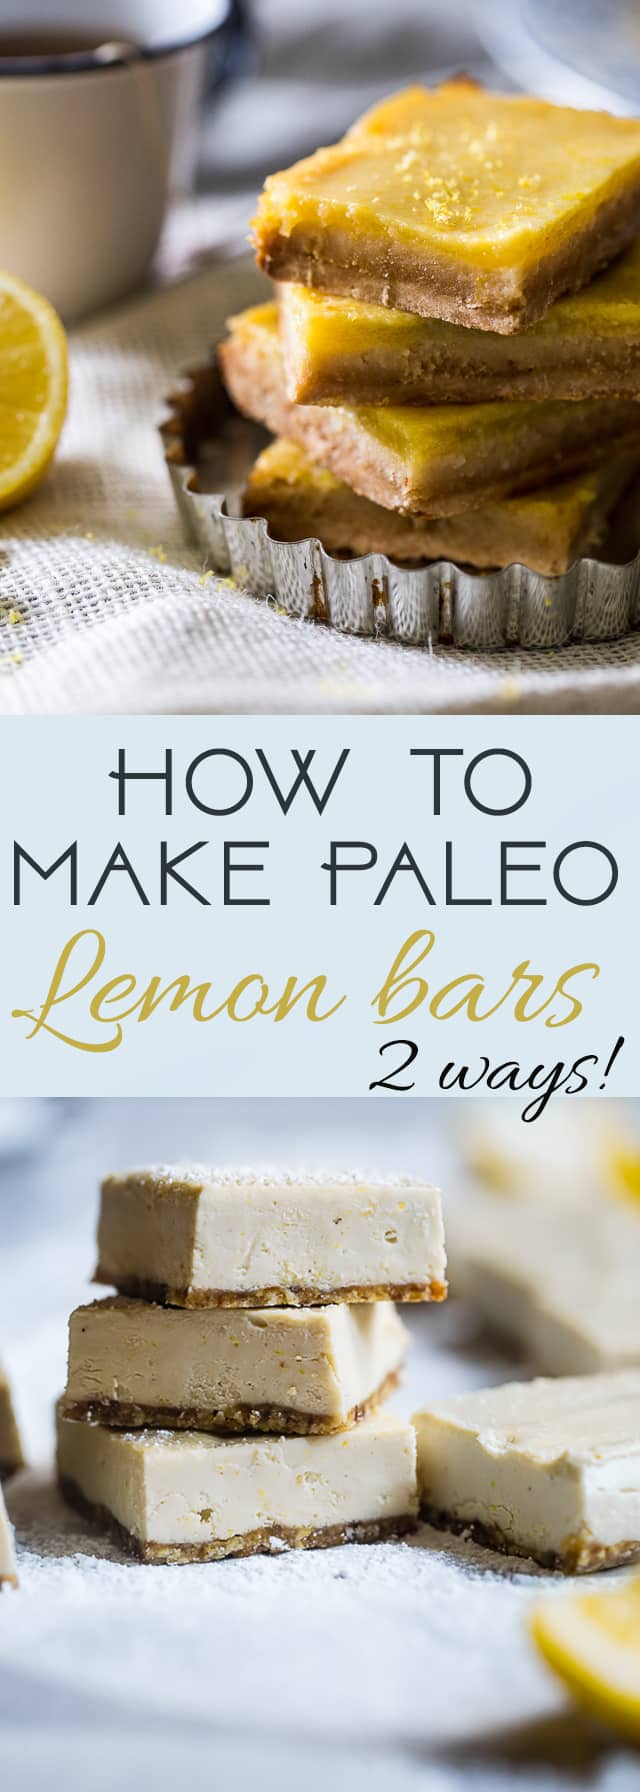 How To Make Paleo Lemon Bars - Ever wondered how to make healthy lemon bars? Learn two easy ways - baked and no bake - to make your favorite treat under 5 ingredients and gluten free, dairy and grain free! | Foodfaithfitness.com | @FoodFaithFit